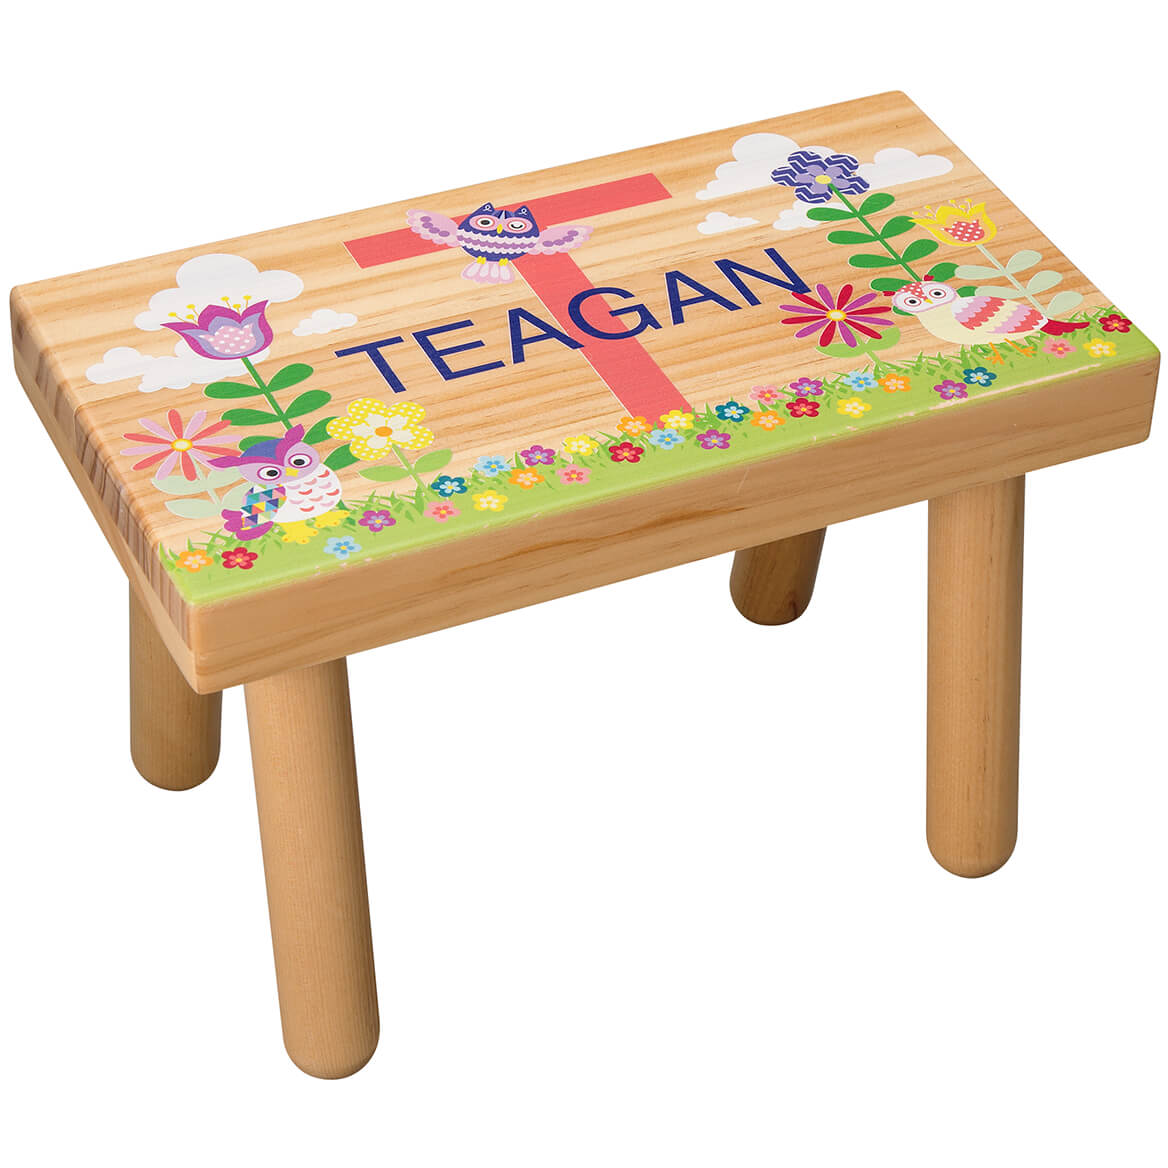 Personalized Flowers & Owls Children's Step Stool-368057